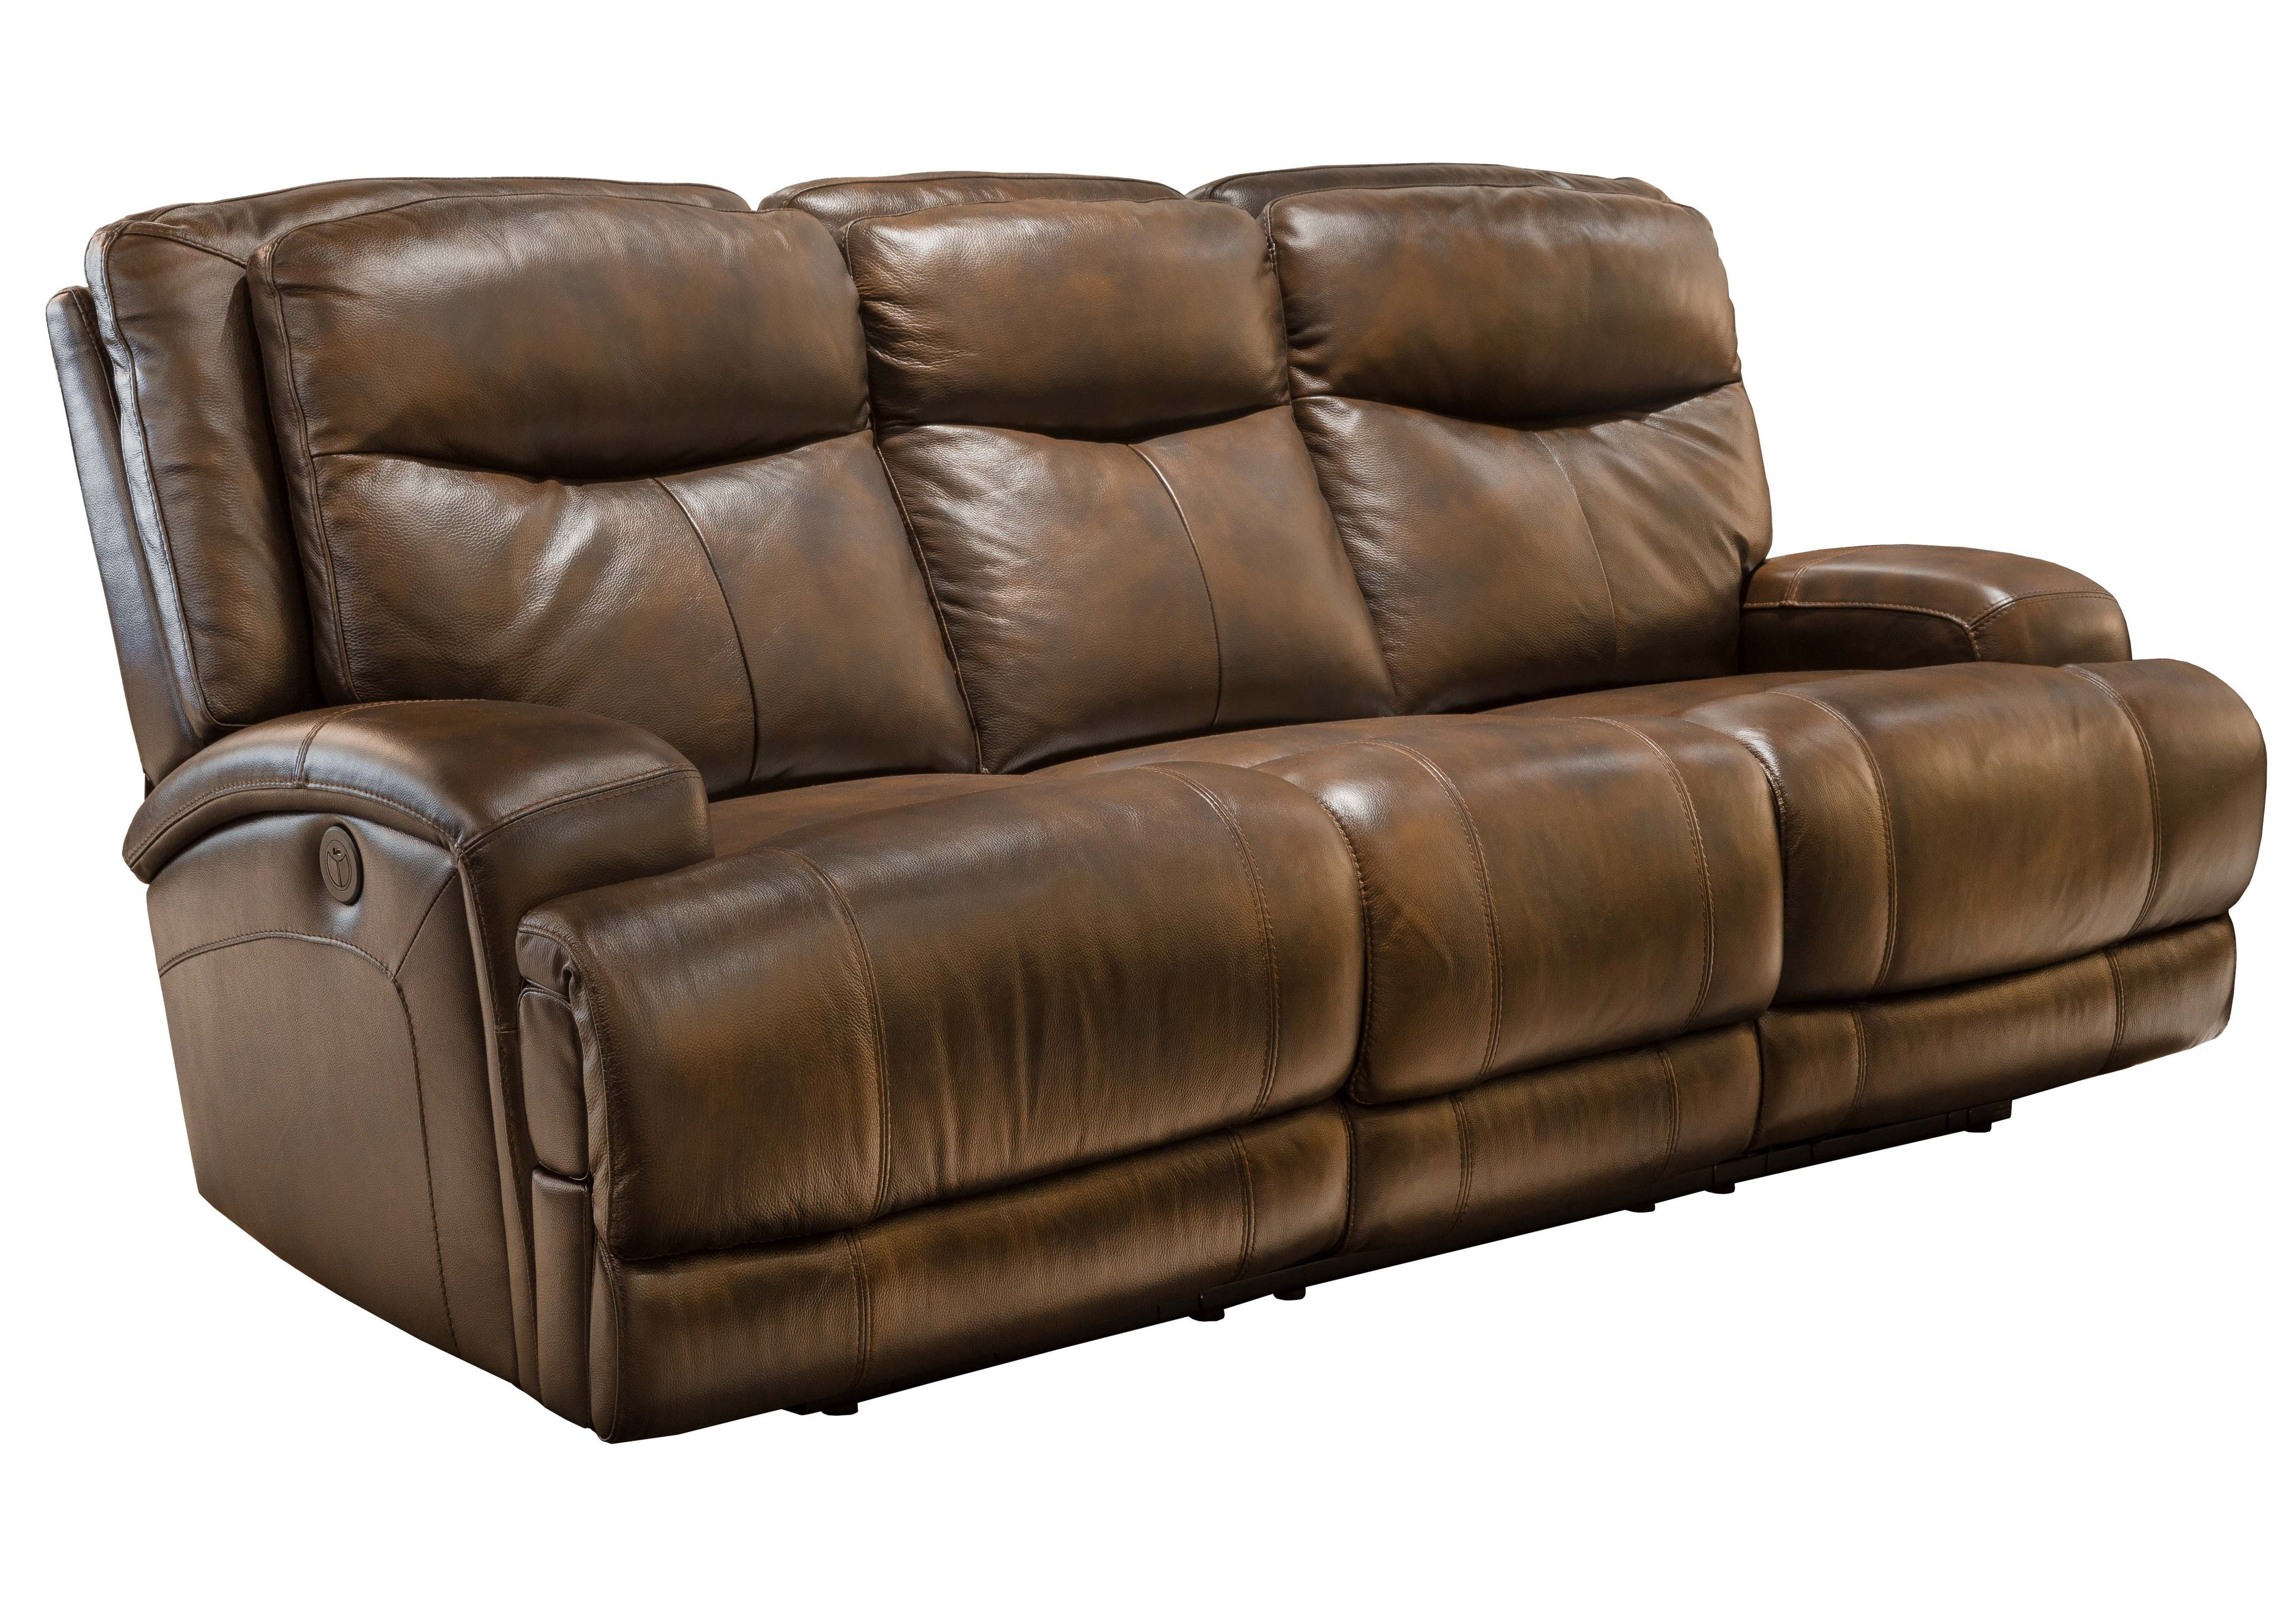 3692ED Power Recliner Leather Sofa   Brown | Violino Limited